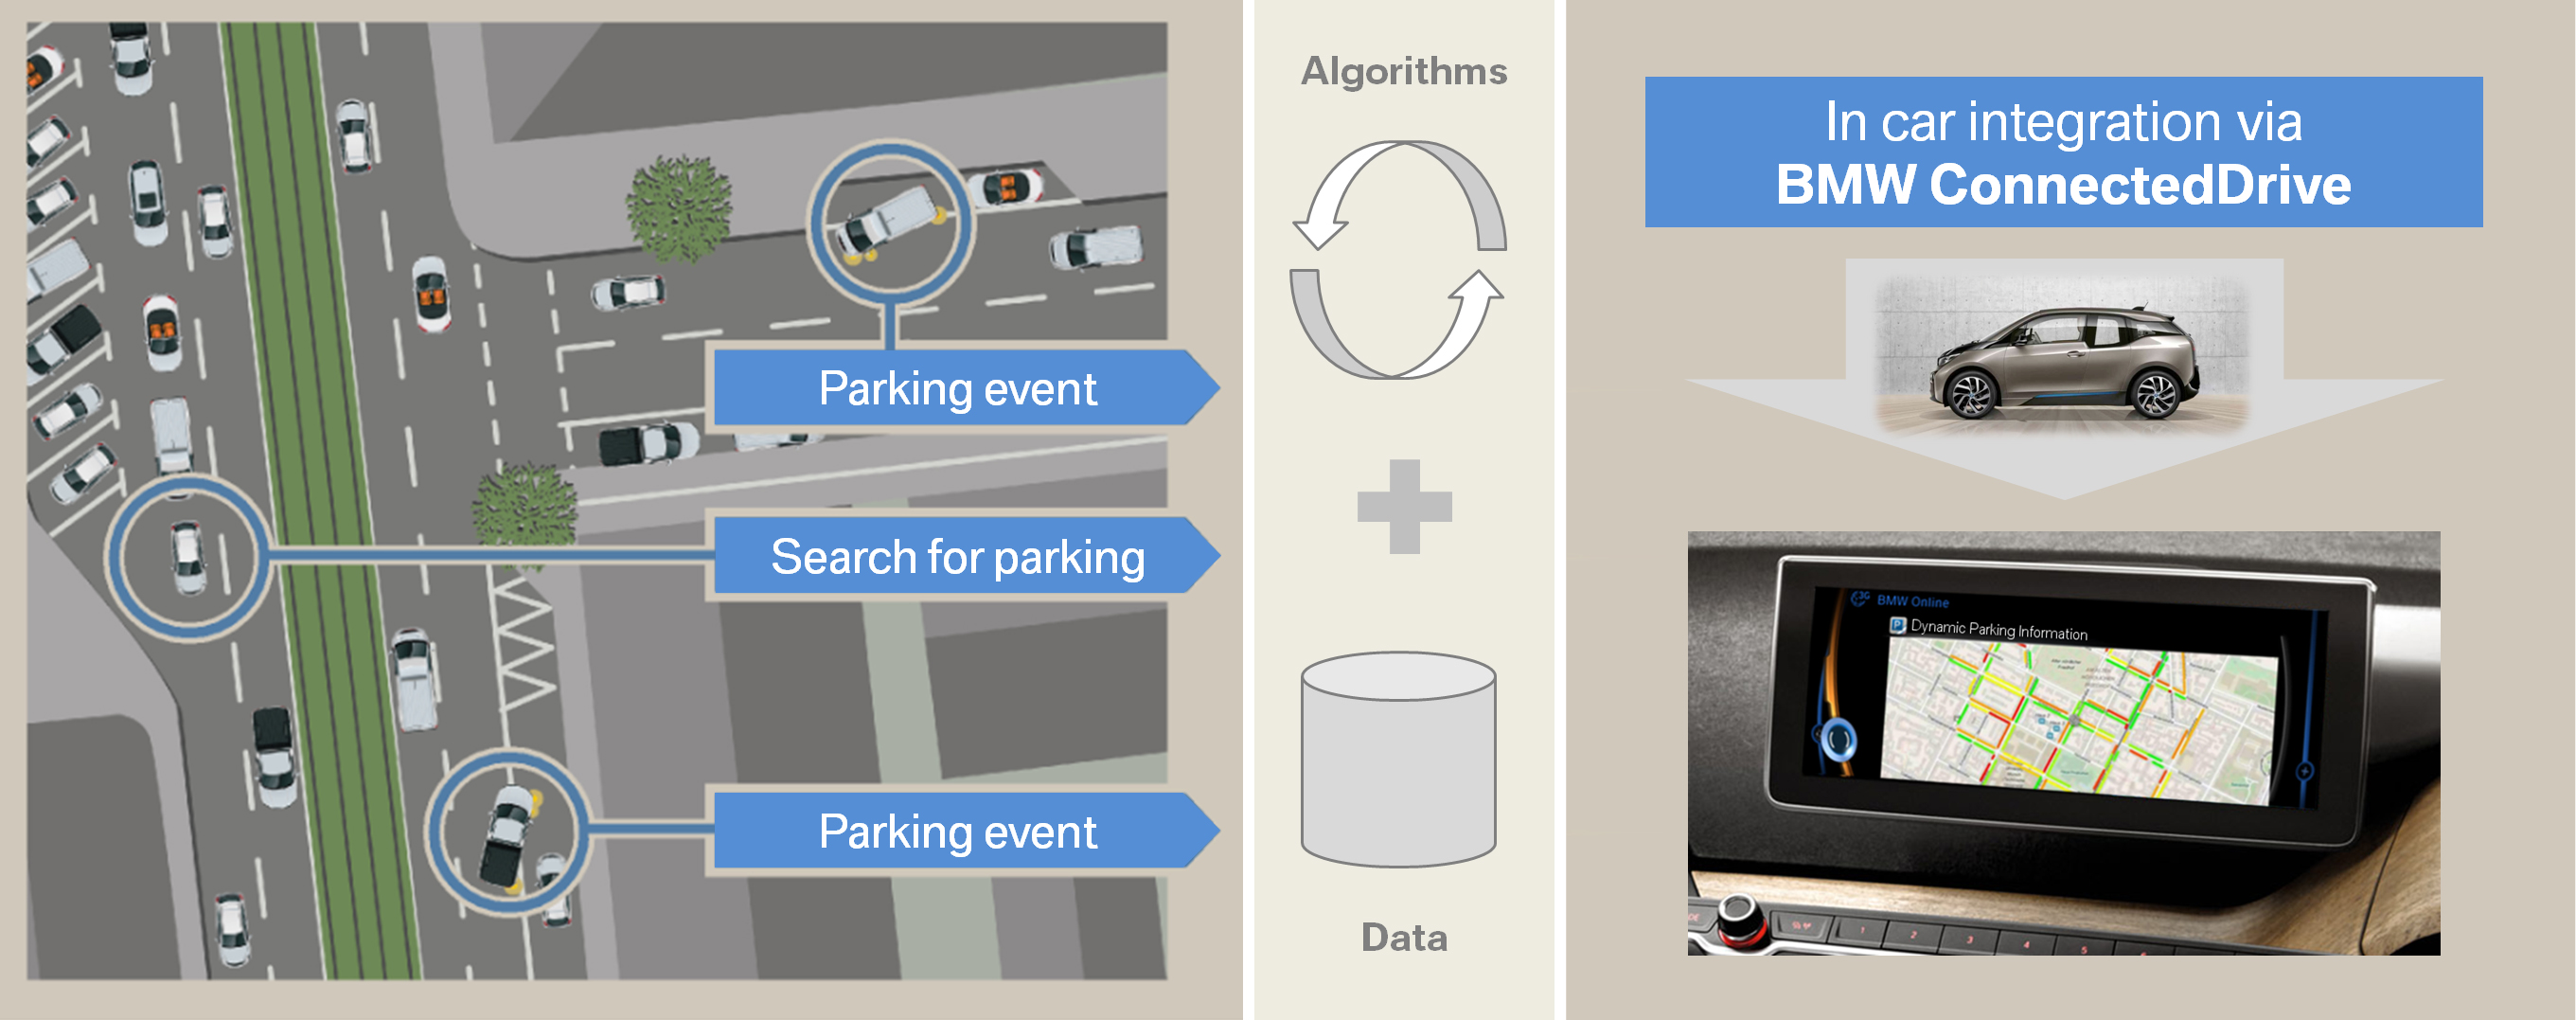 BMW ConnectedDrive, Dynamic Parking Prediction